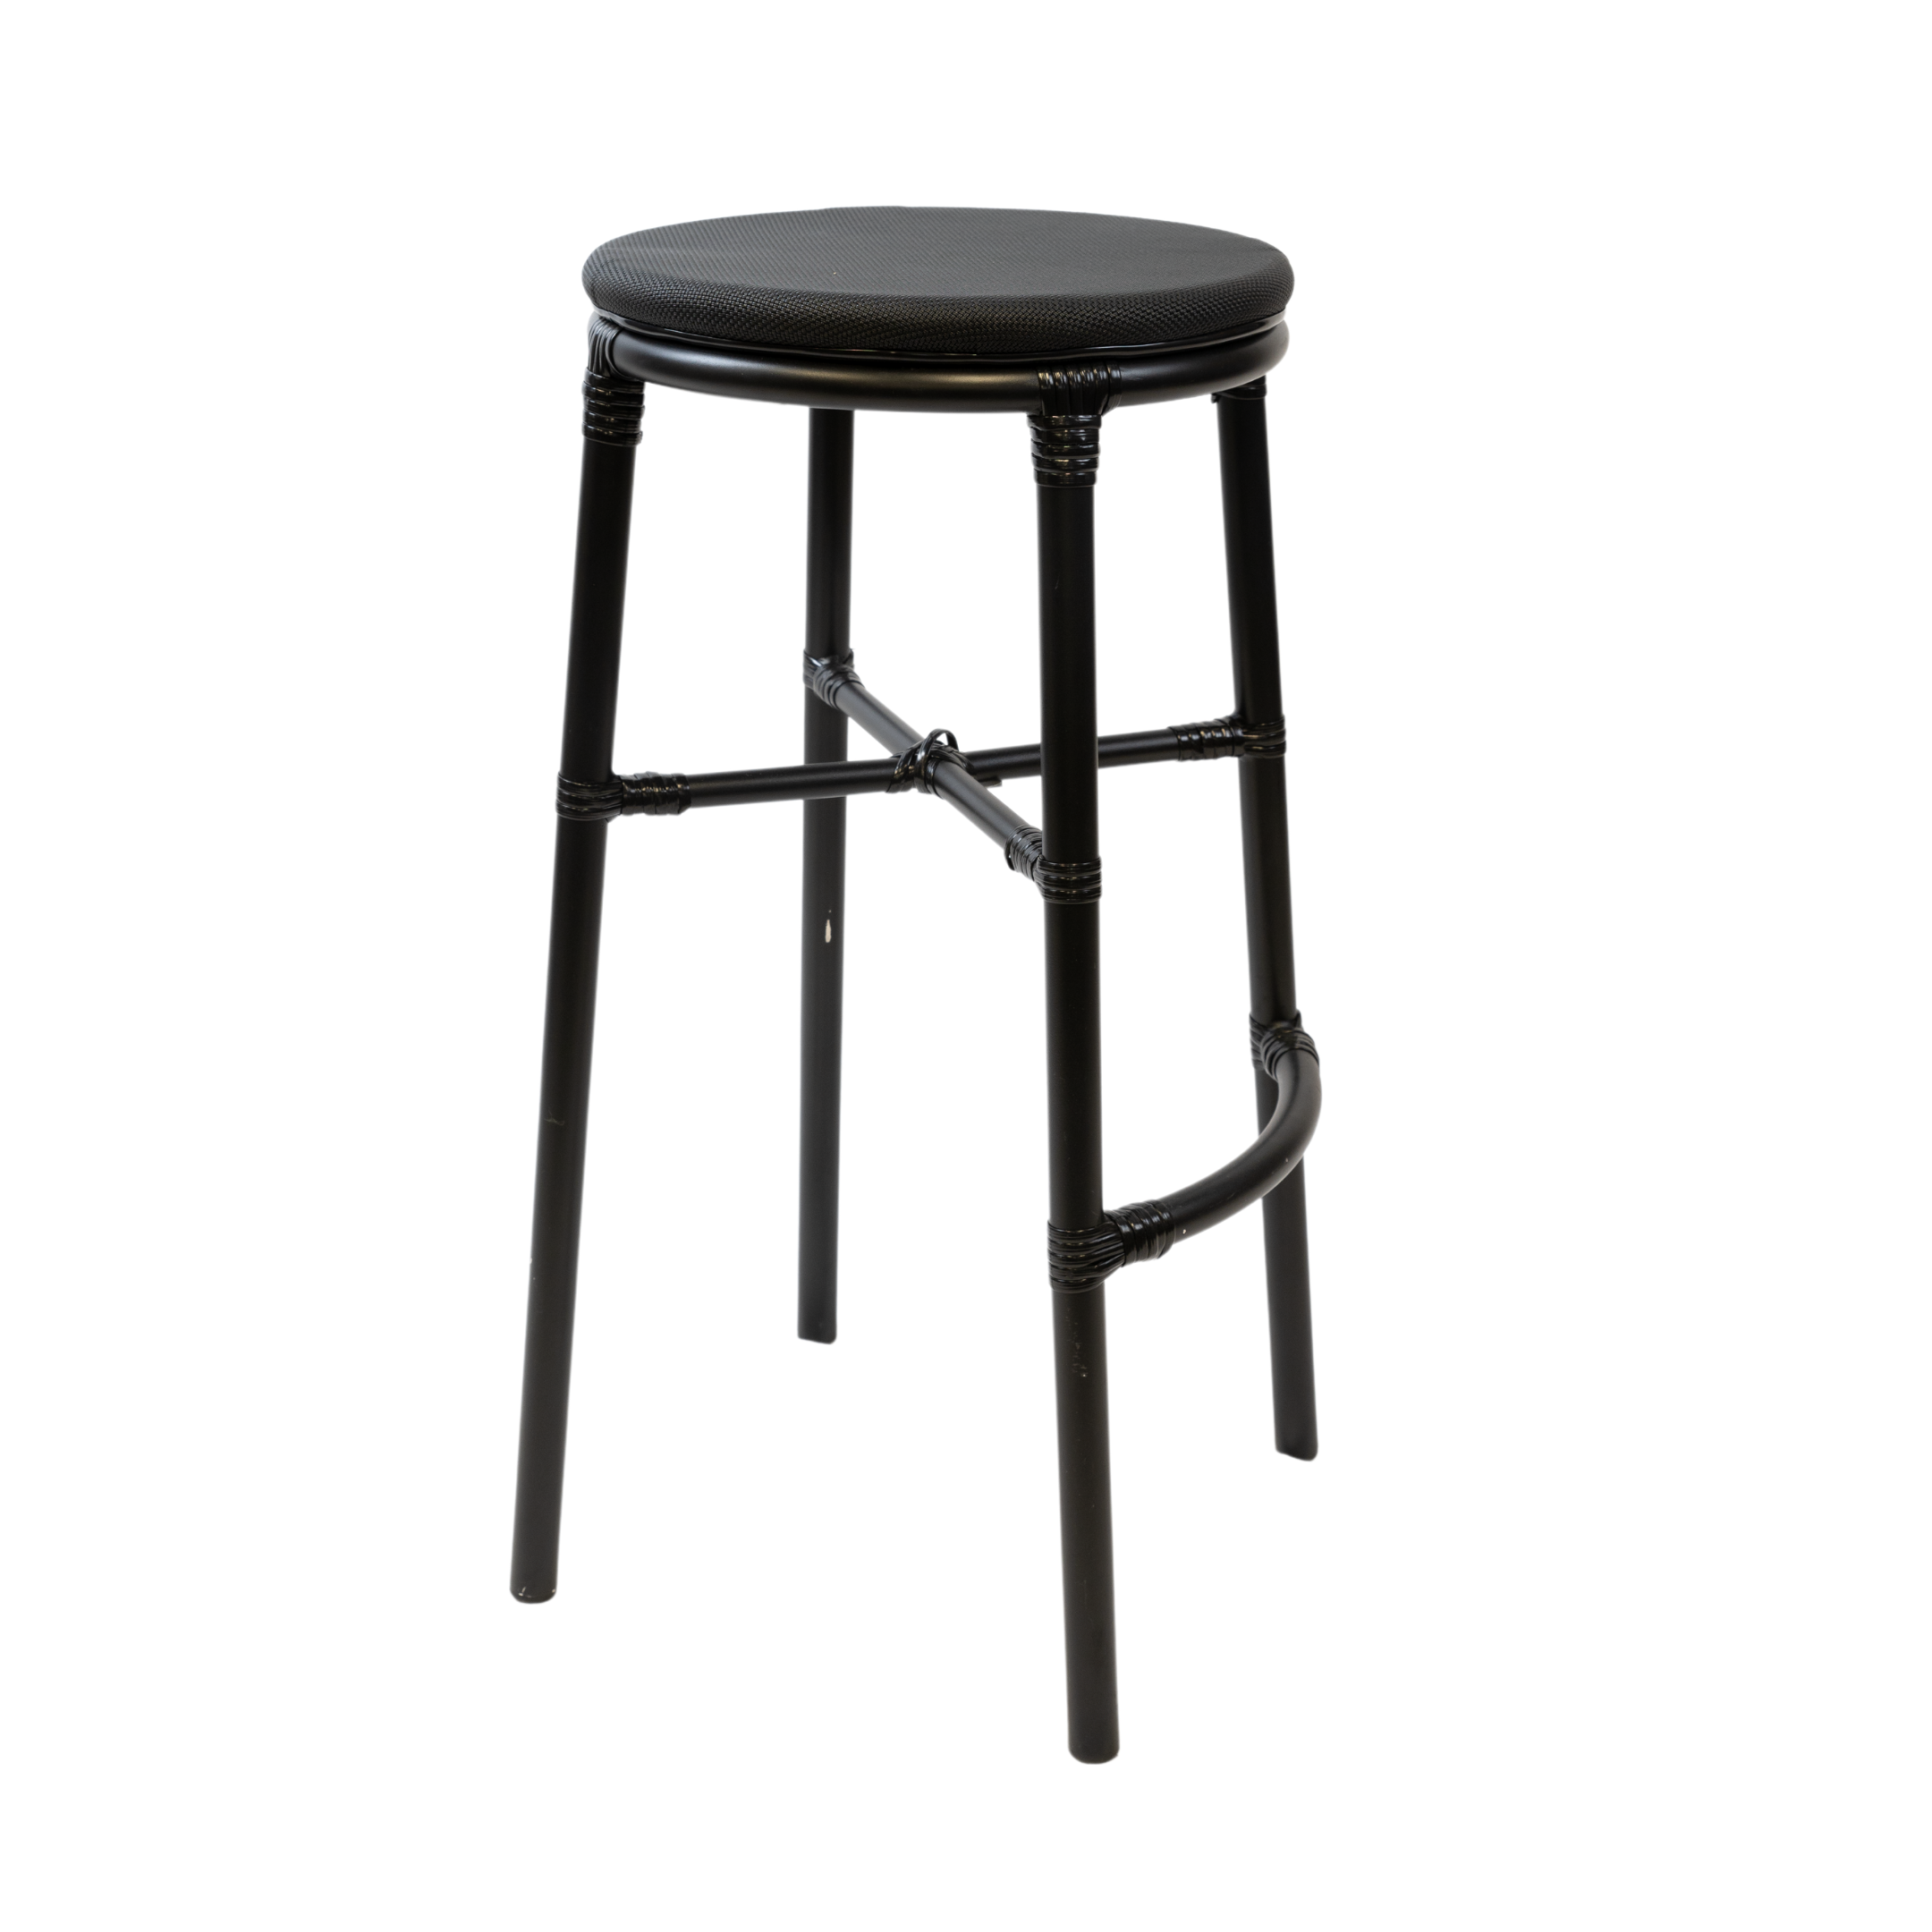 Black-Luca-Bar-Stool-Hire